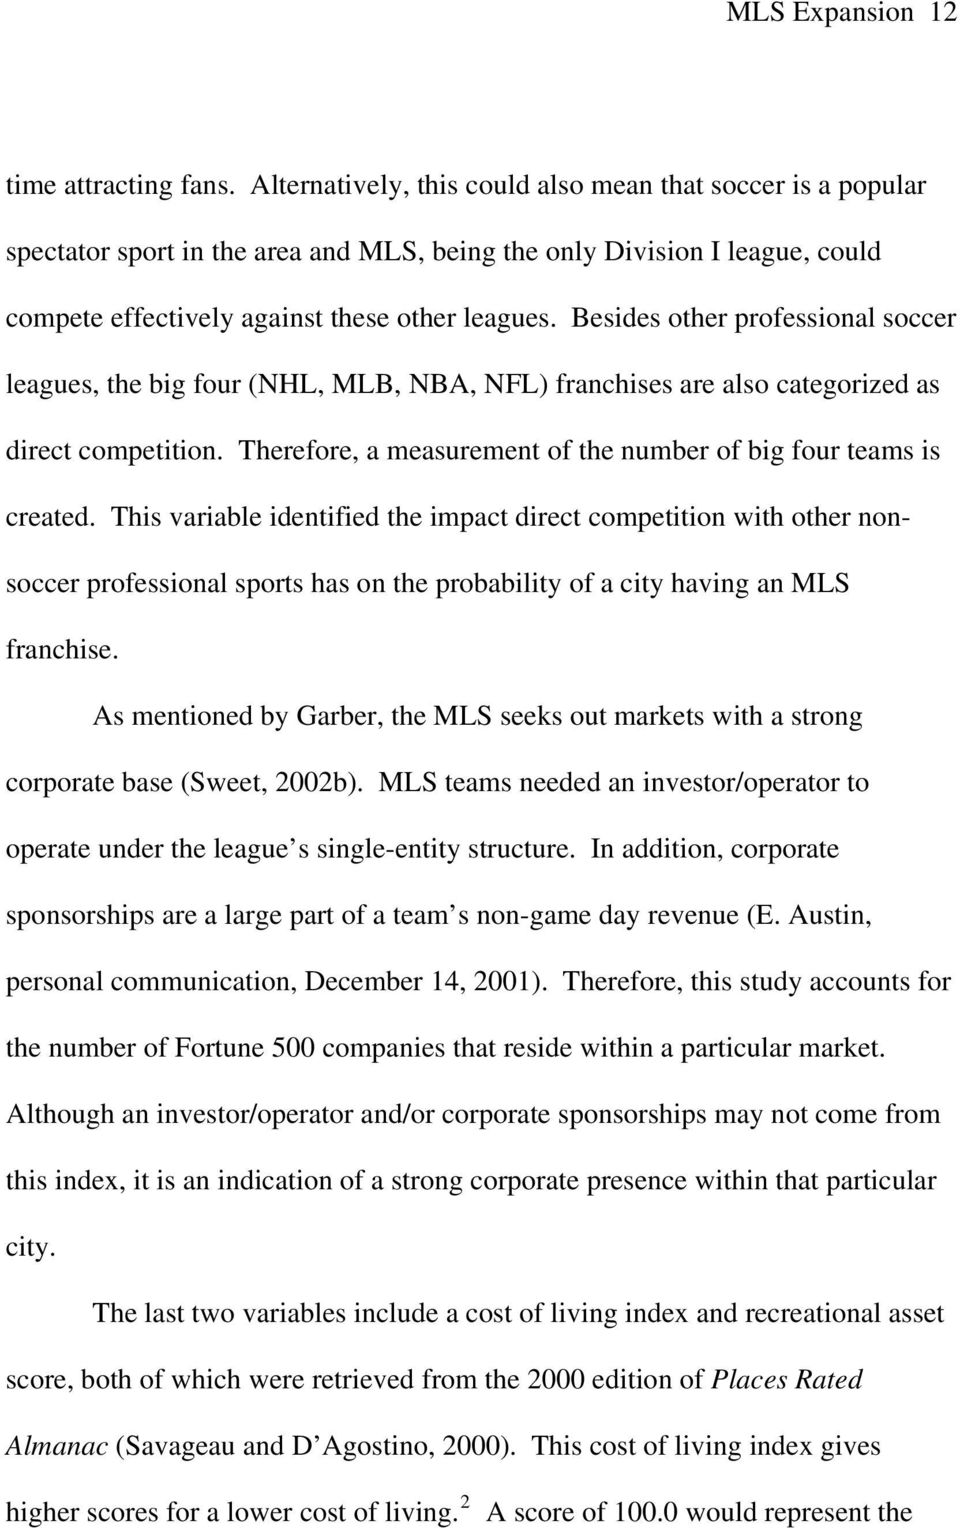 Besides other professional soccer leagues, the big four (NHL, MLB, NBA, NFL) franchises are also categorized as direct competition. Therefore, a measurement of the number of big four teams is created.